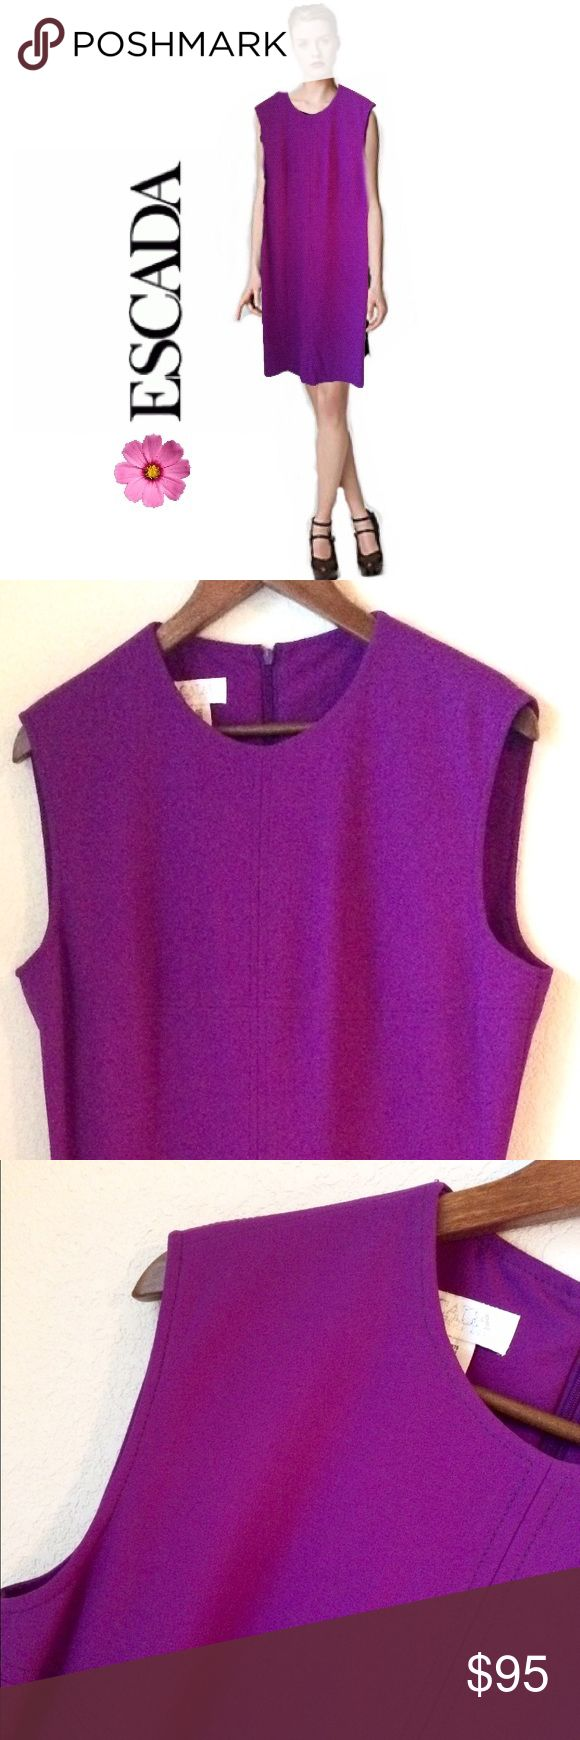 "ESCADA Dress Vintage dark berry colored midi sleeveless dress by ESCADA Margaretha Ley size 10. Half zip back, lined. 39"" L from collar, 18 1/2"" across chest. In excellent condition. No stains, holes or signs of wear. Escada Dresses Midi"